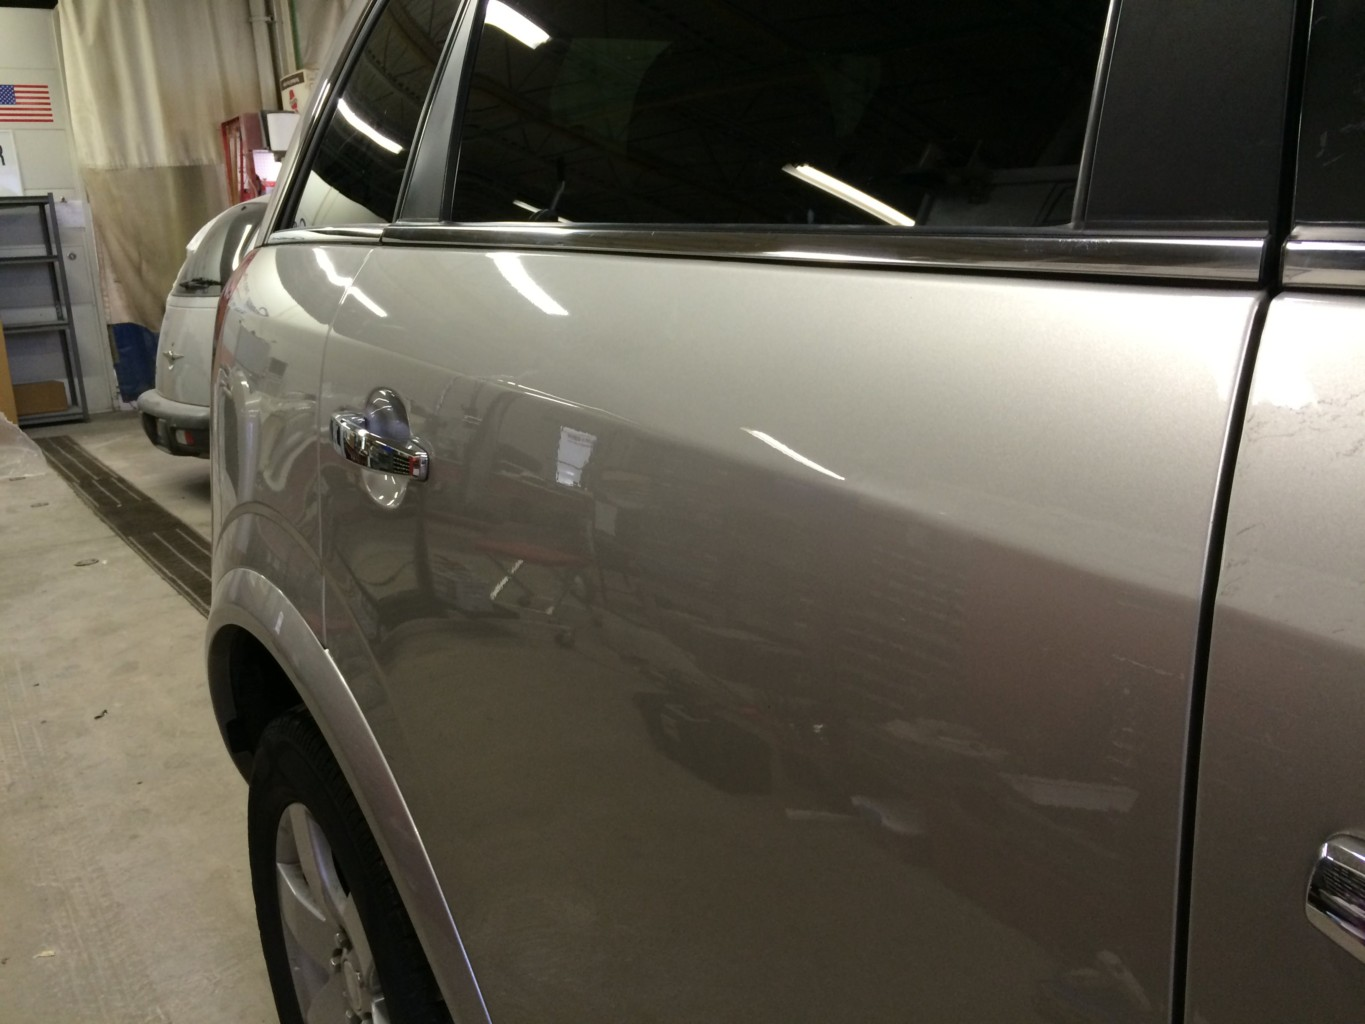 Paintless Dent Repair Grand Rapids, Michigan: Vue door - after